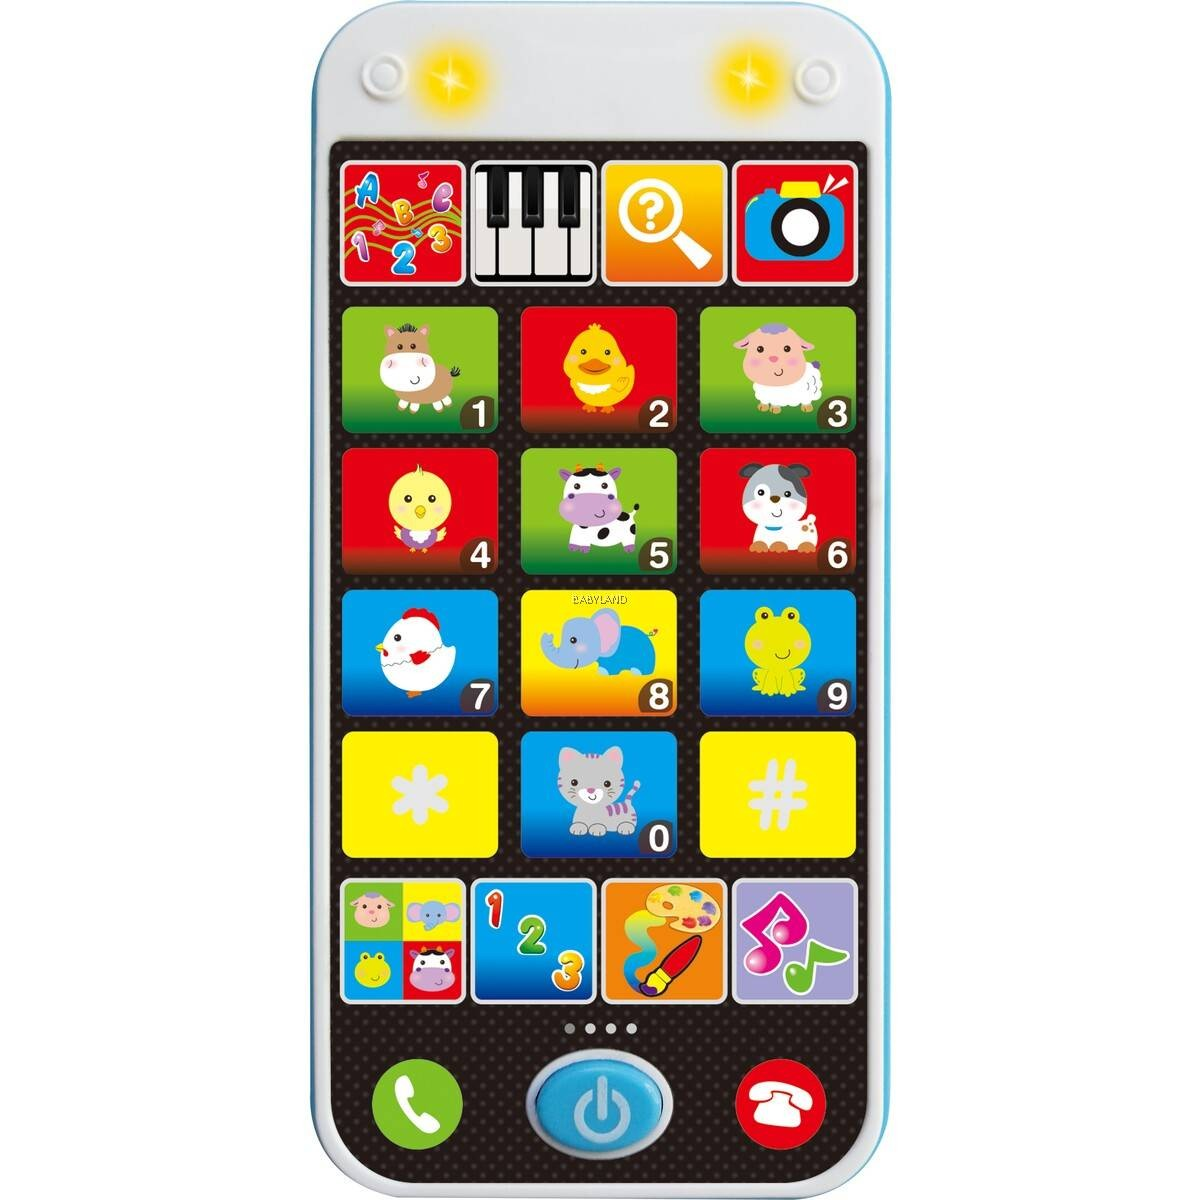 Infunbebe Smart Phone Melody Version Toy for 12m+